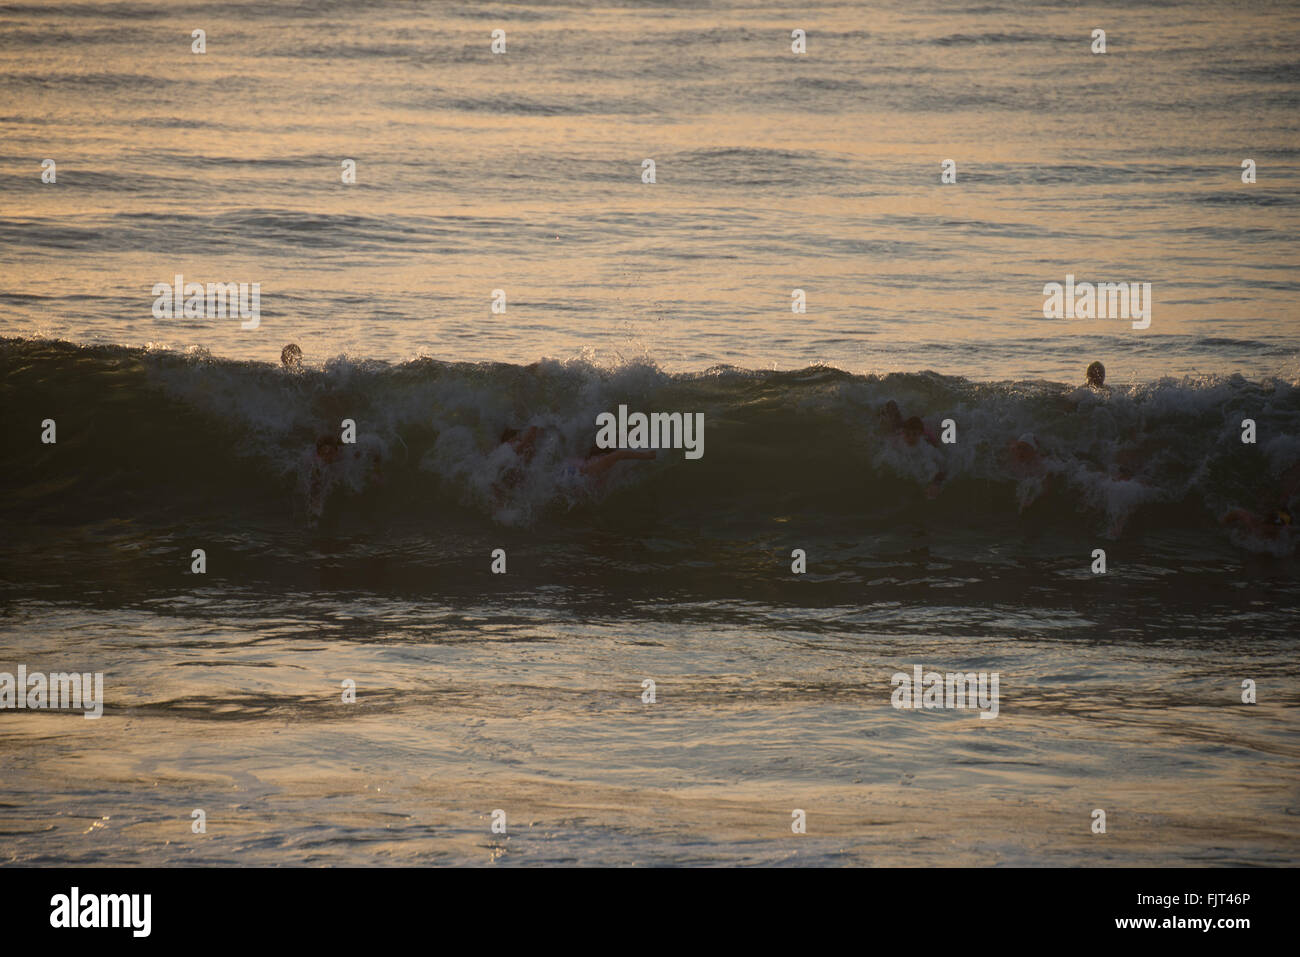 Wave Rushing At Shore - Stock Image